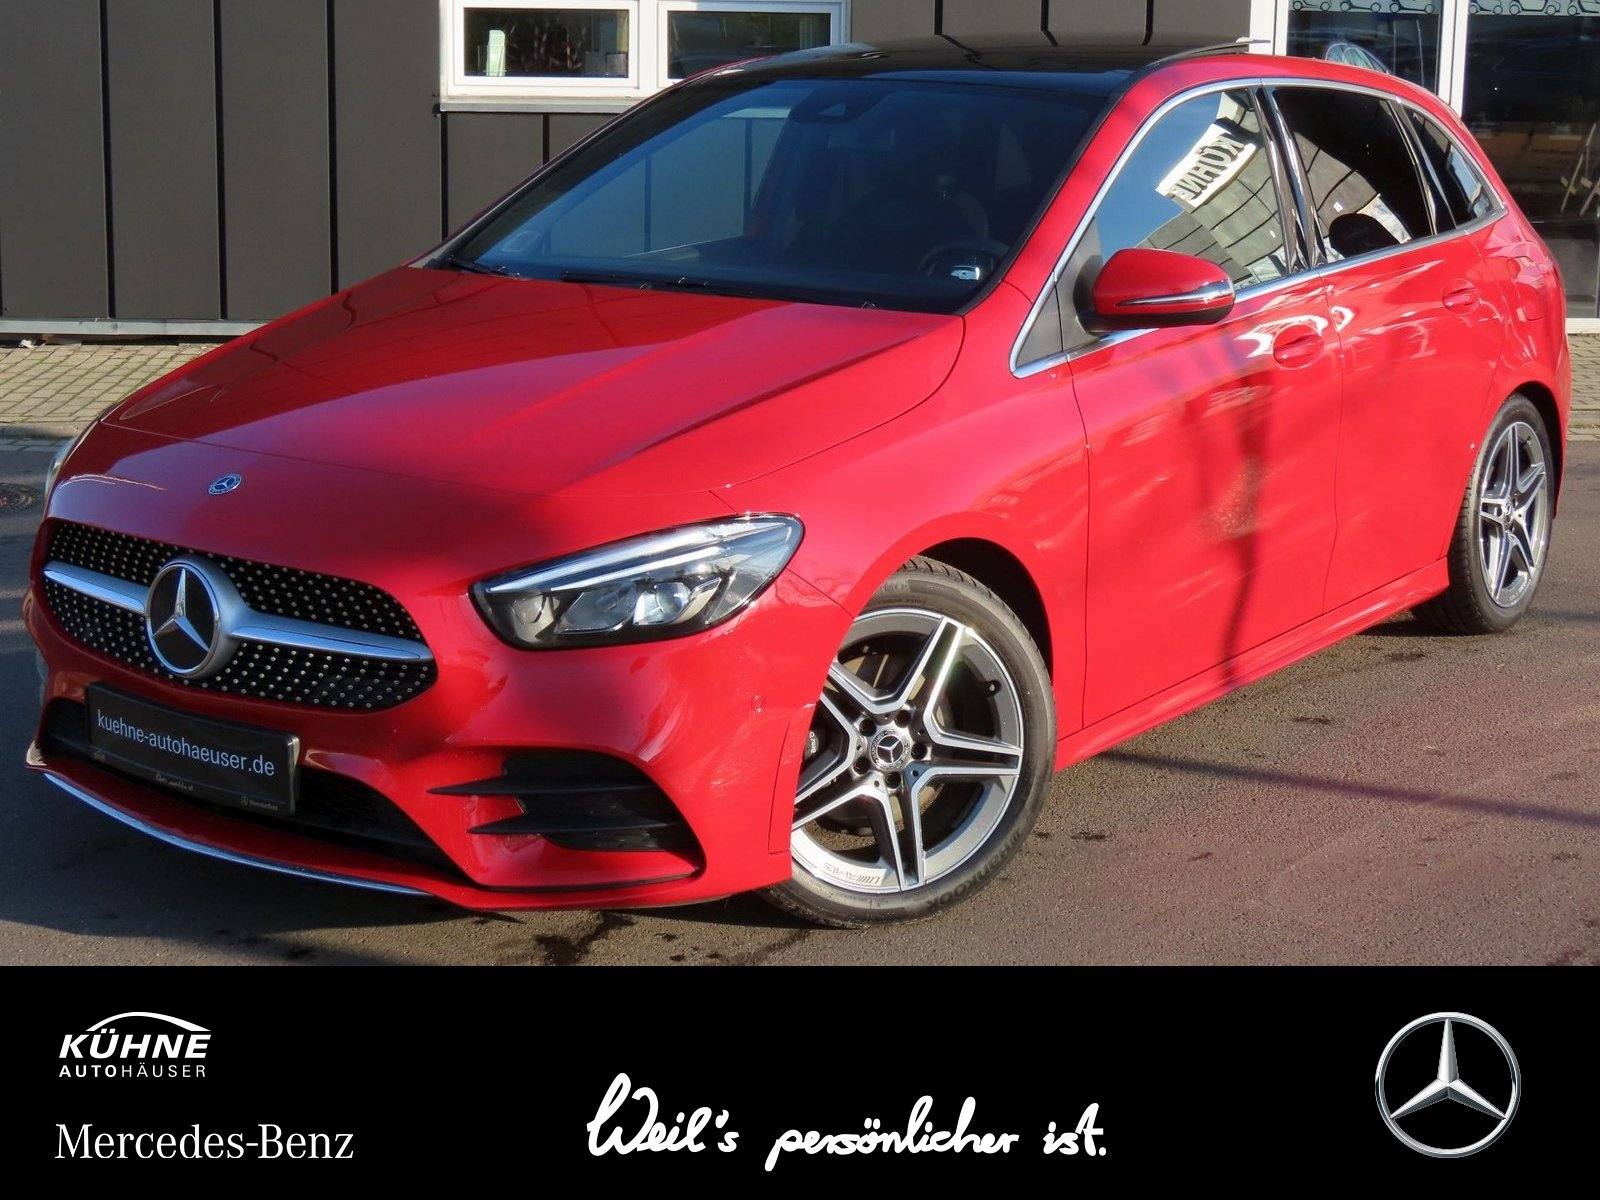 Mercedes-Benz B 200 d AMG Line 8G+Distronic+Pano+LED High+Navi, Jahr 2019, Diesel